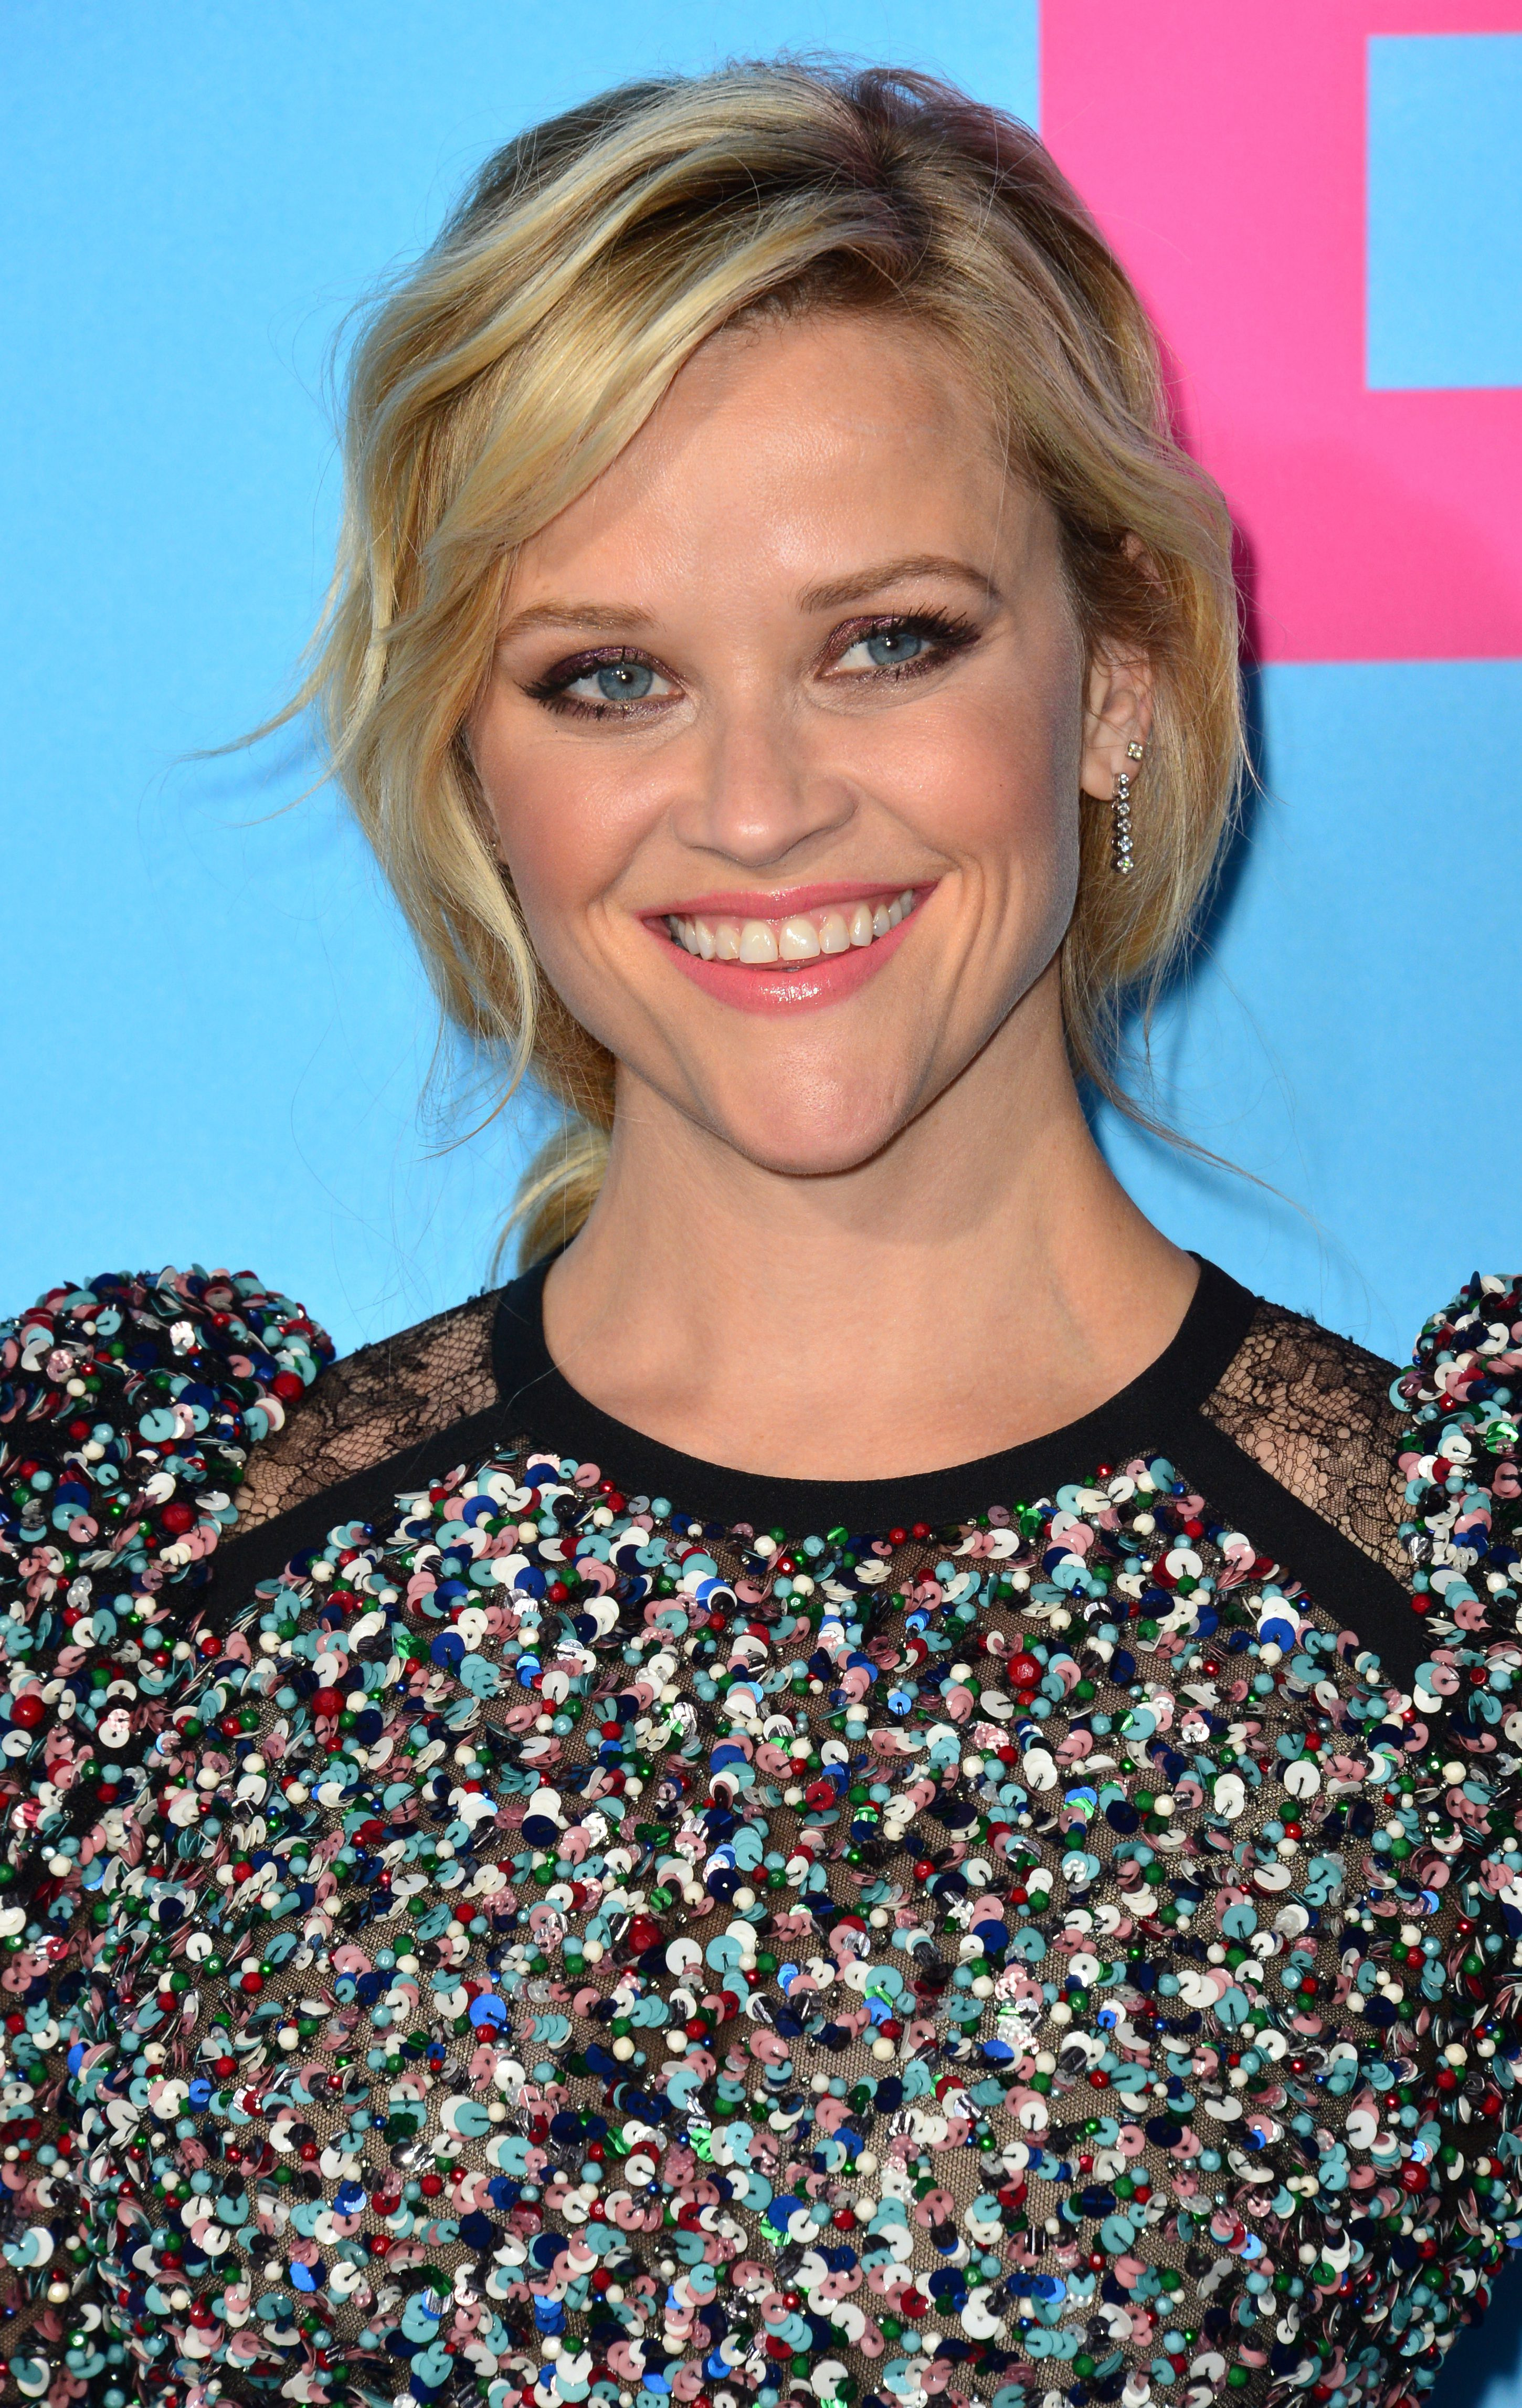 Reese Witherspoon Having a Silky Short Bob